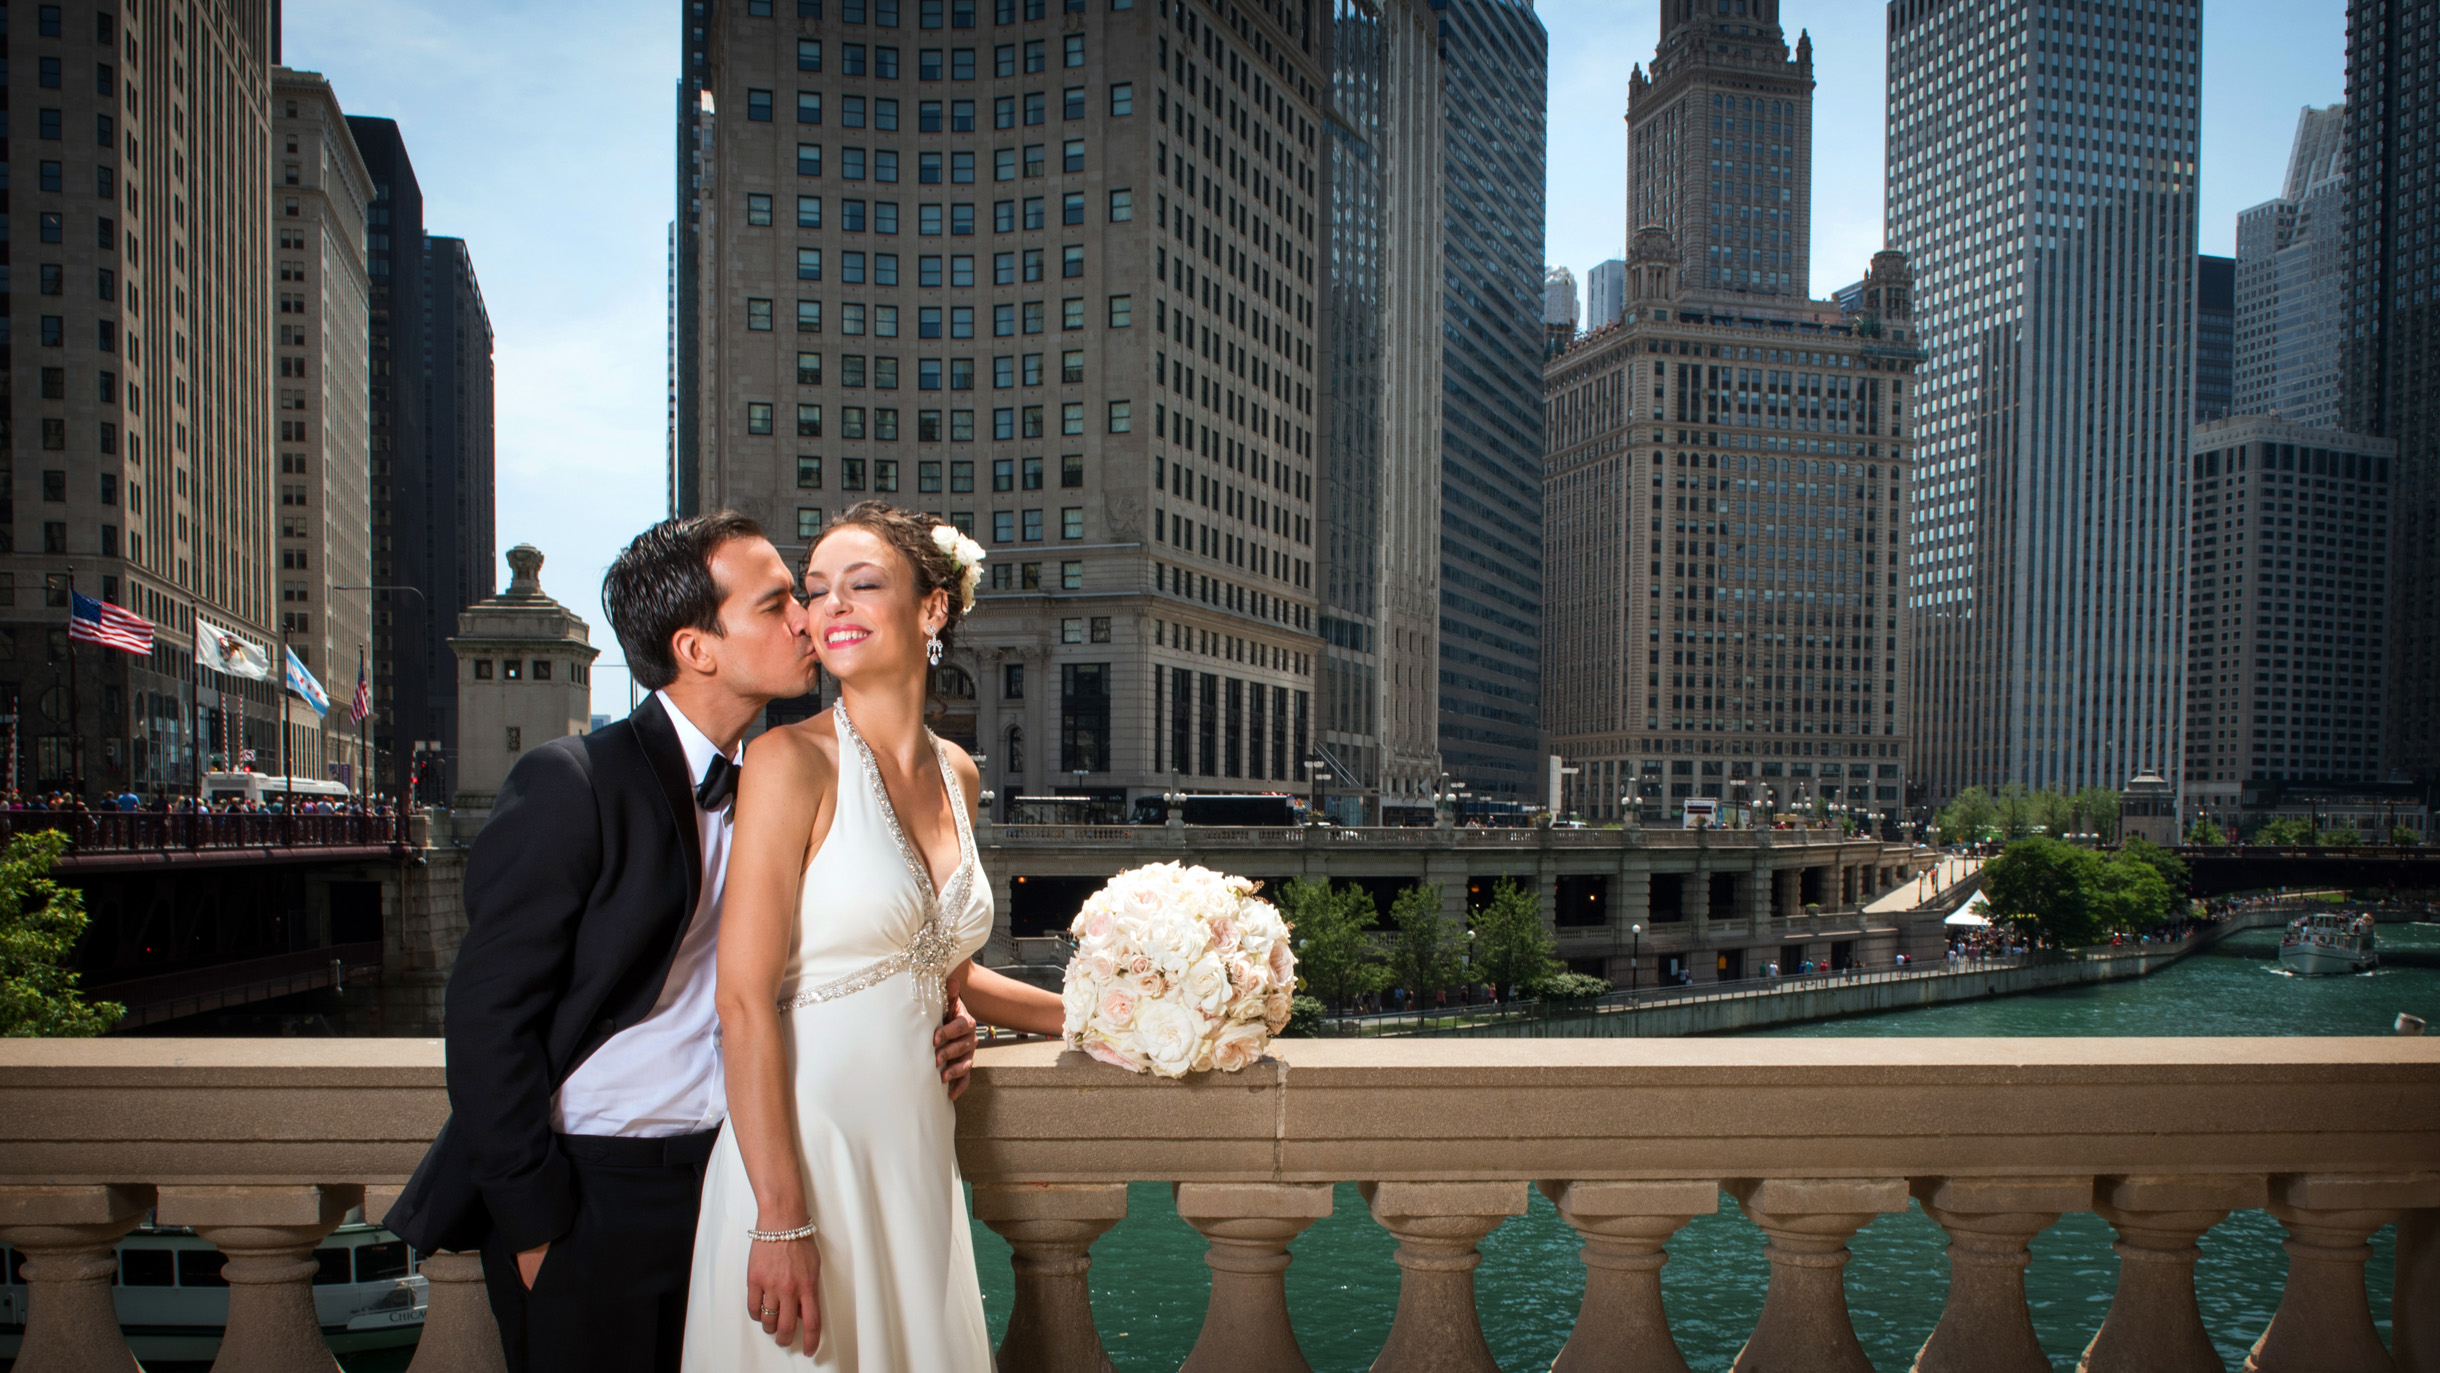 Bride and Groom at the Wrigley Building in Chicago on their wedding day with skyline-1